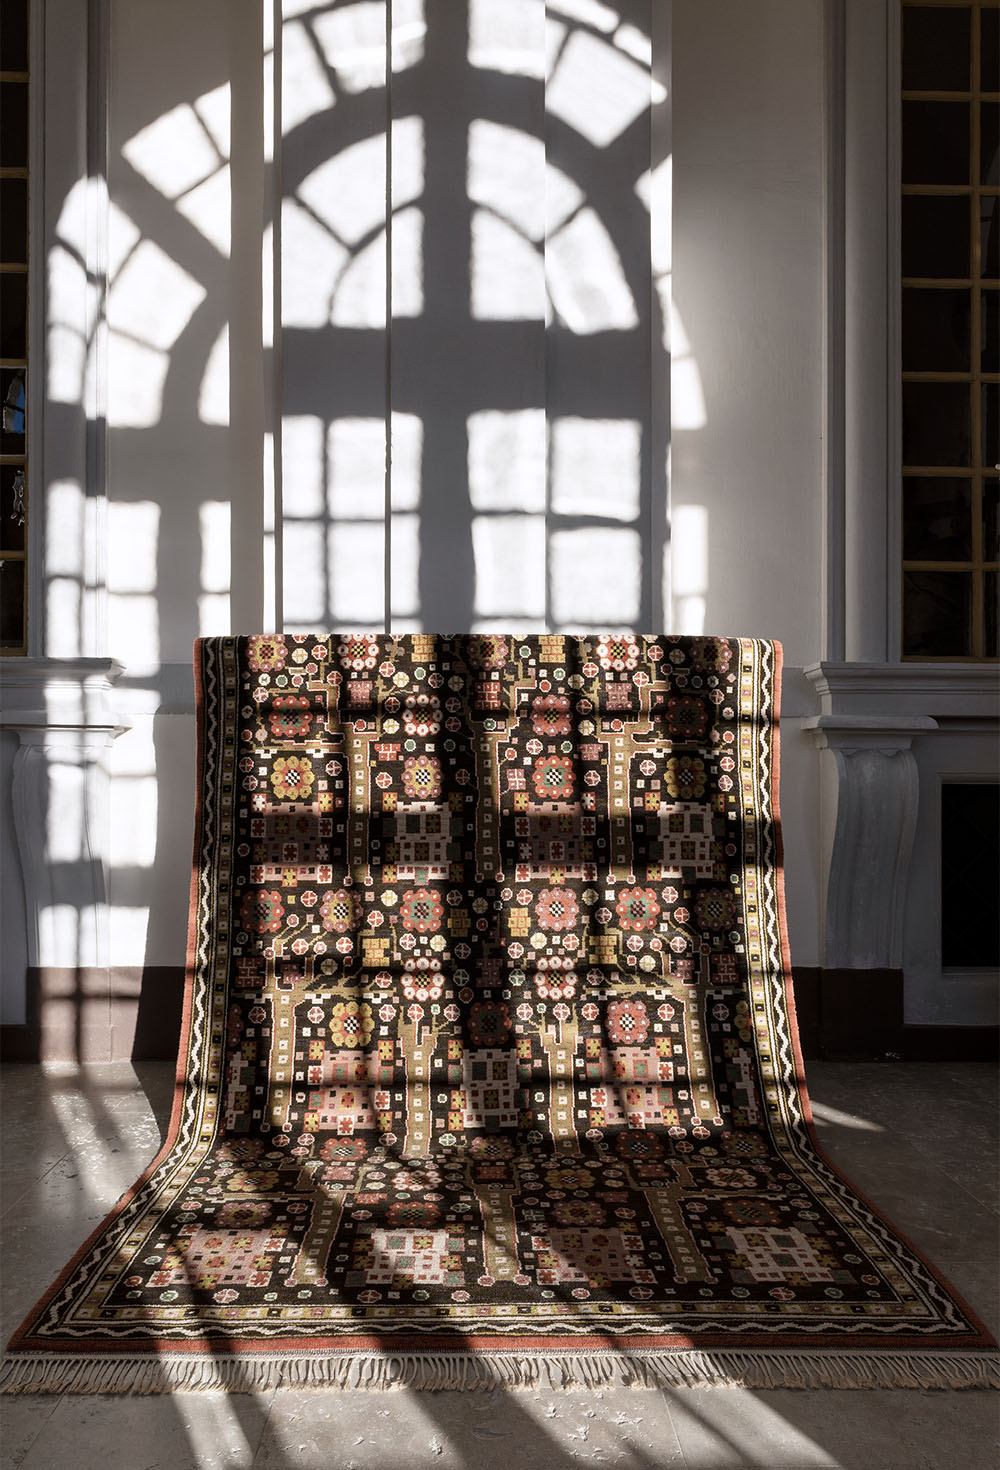 Svarta Trädgårdsmattan, designed in 1923, is often referred to as one of MååsFjetterström's masterpieces. The design was inspired by the ancient oaks in her childhood garden, but also has clear influences from traditional Persian carpets